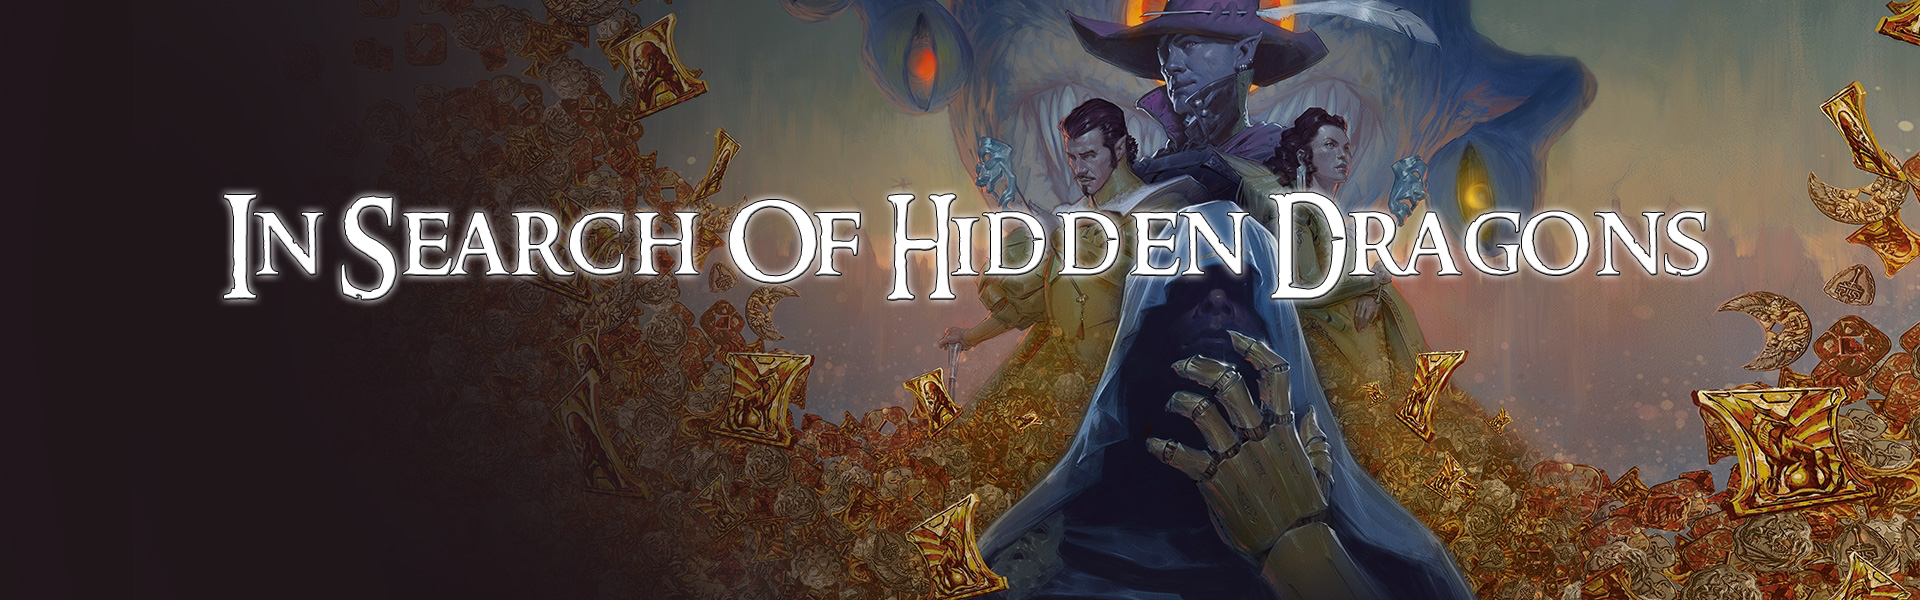 In search of hidden dragons   banner